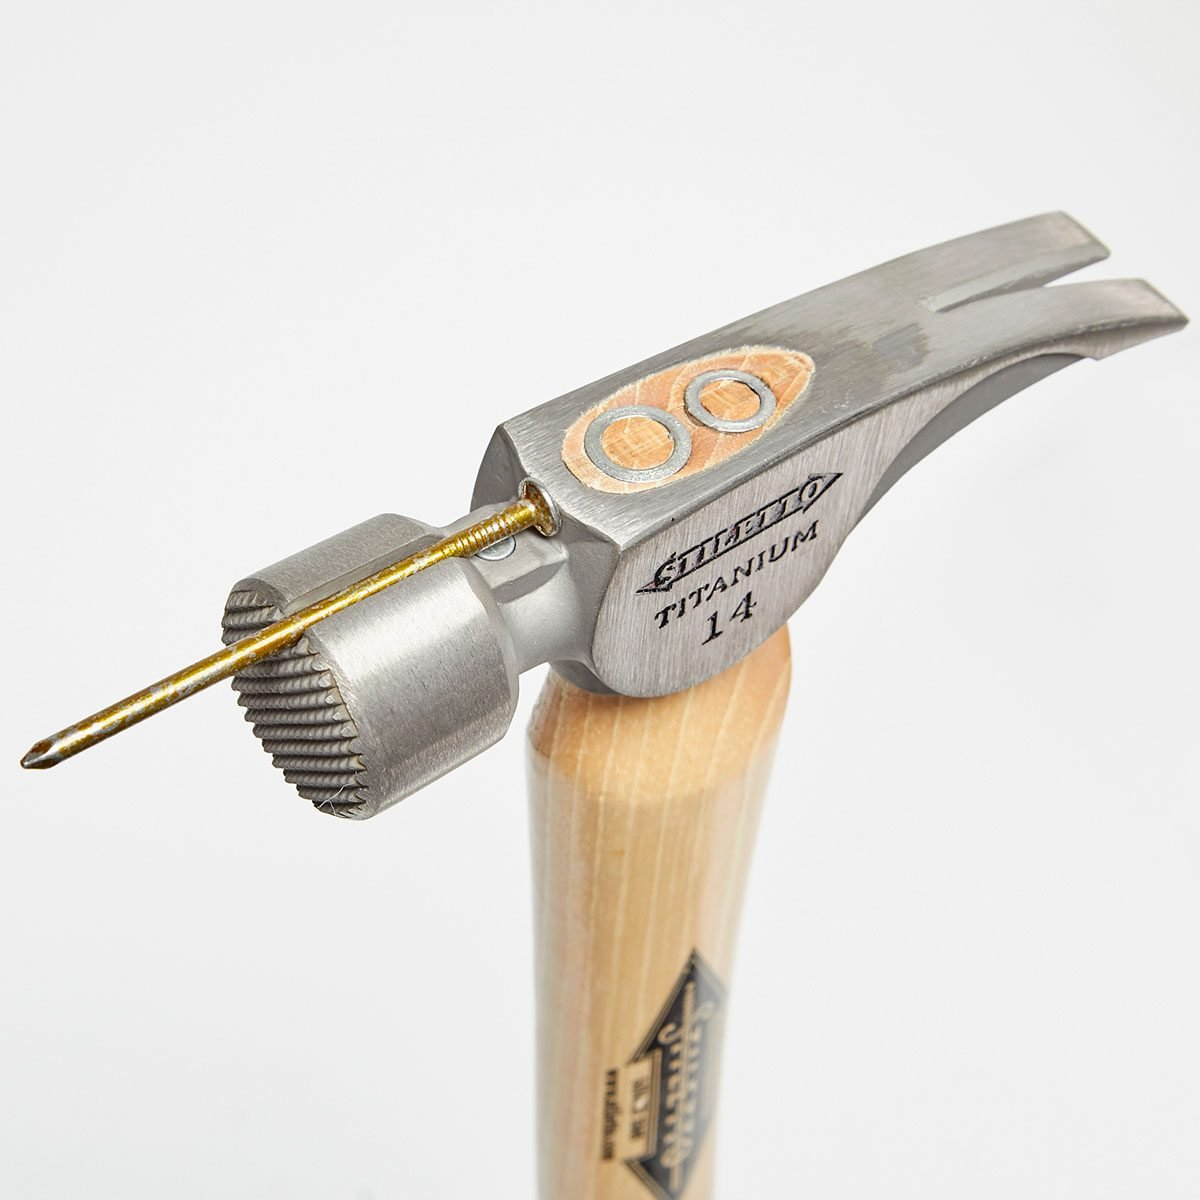 Nail stuck to magnetic hammer head   Construction Pro Tips